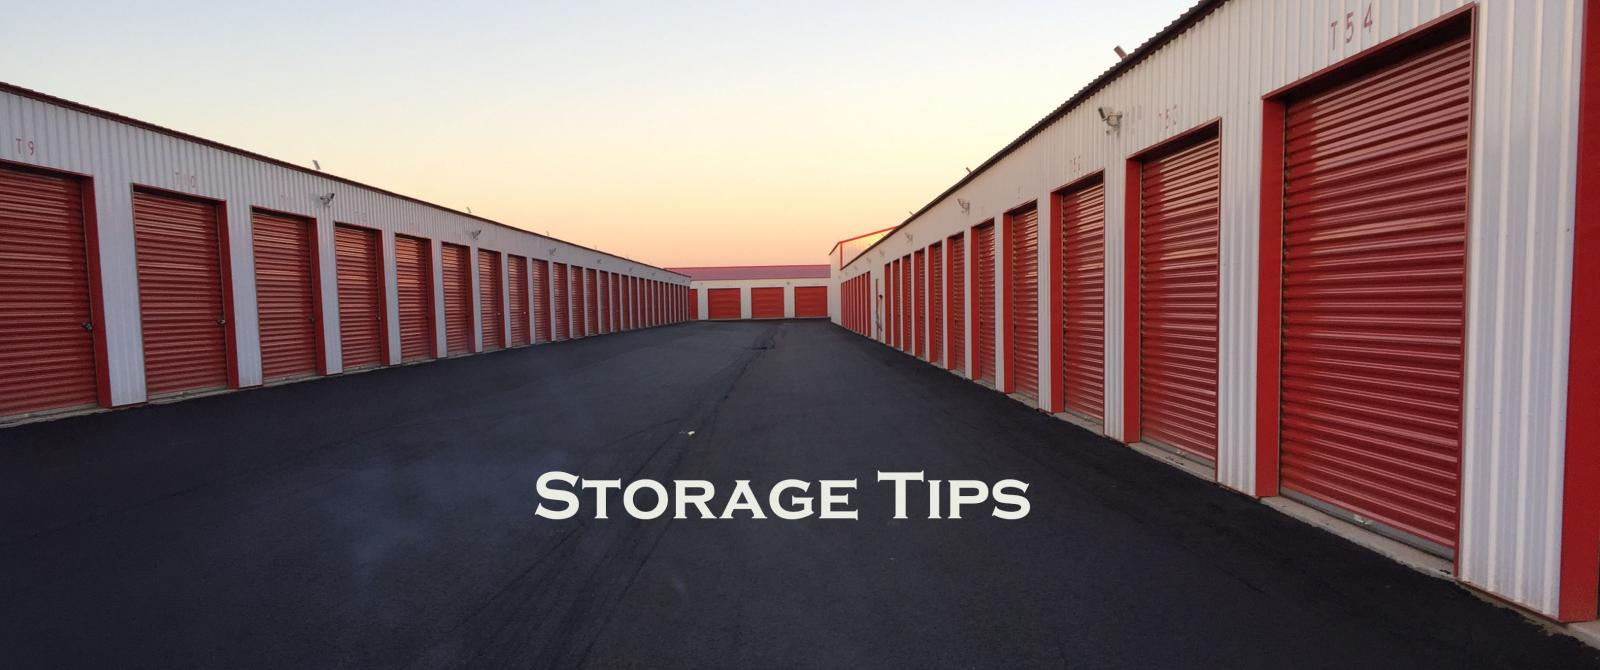 Storage Tips from RH Rebel Storage